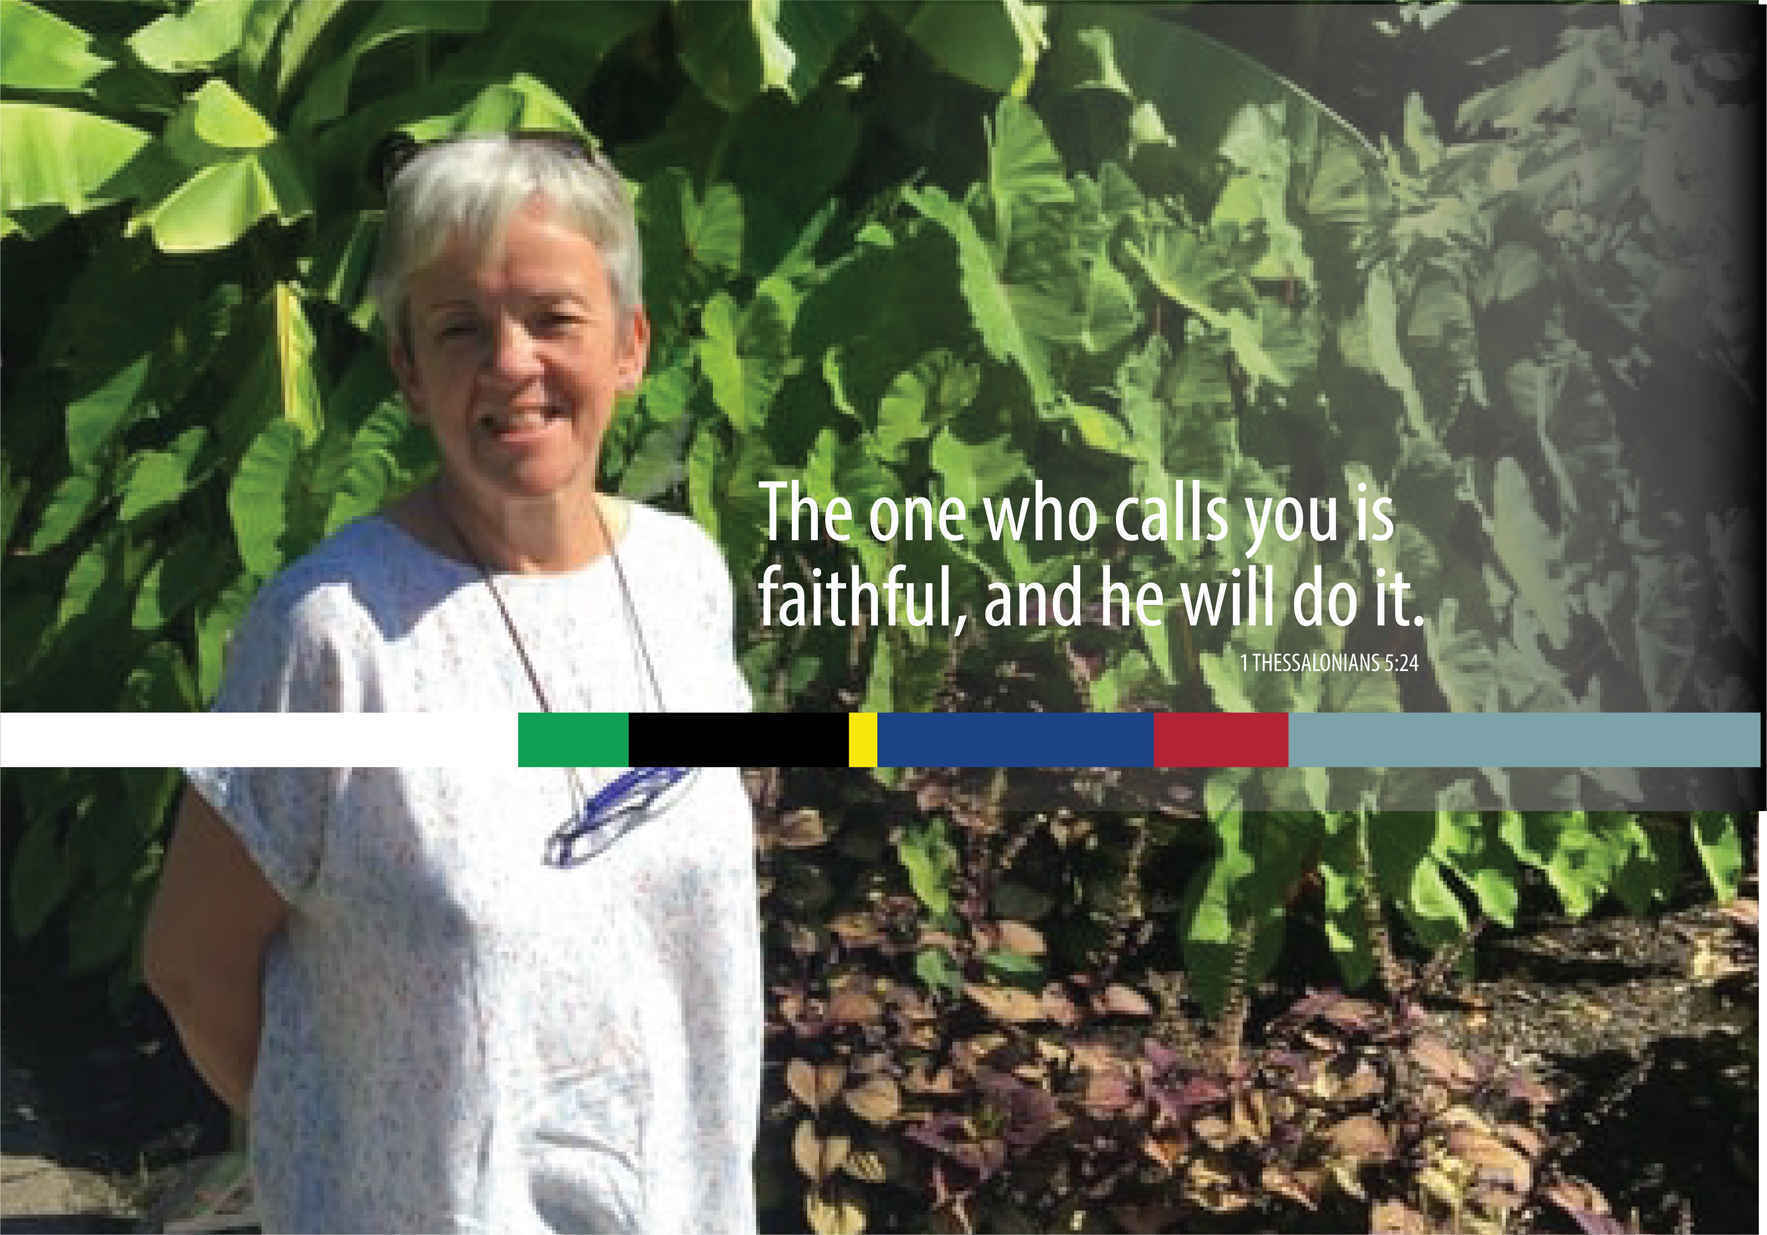 Partner with Deirdre Graham, Missionary in Jamaica image